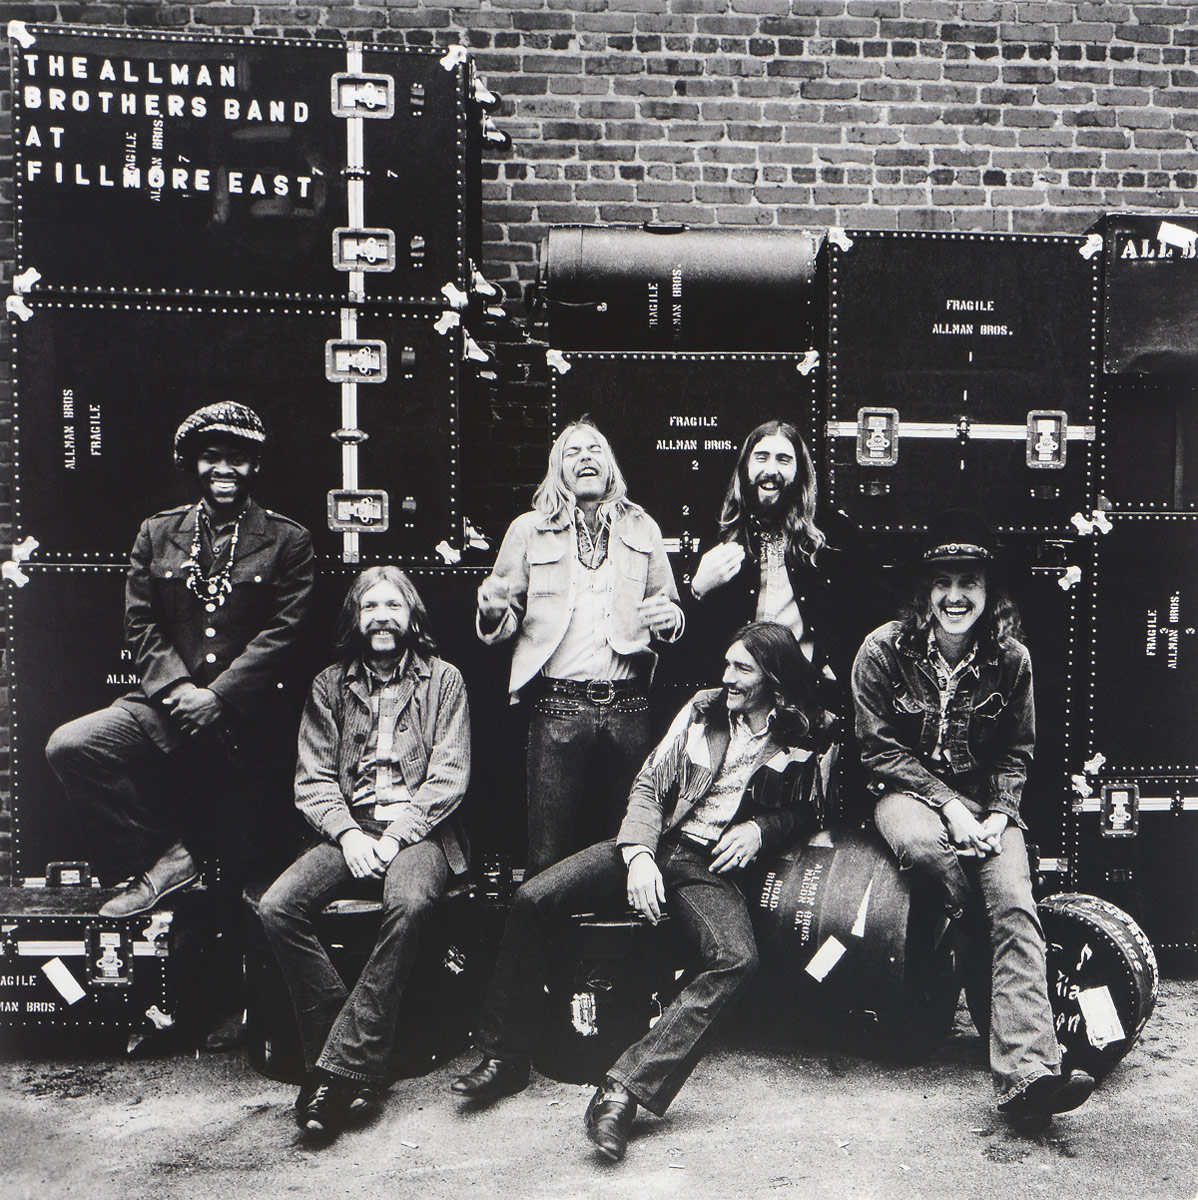 The Allman Brothers Band The Allman Brothers Band. At Fillmore East (2 LP) the allman brothers band the allman brothers band at fillmore east 2 lp